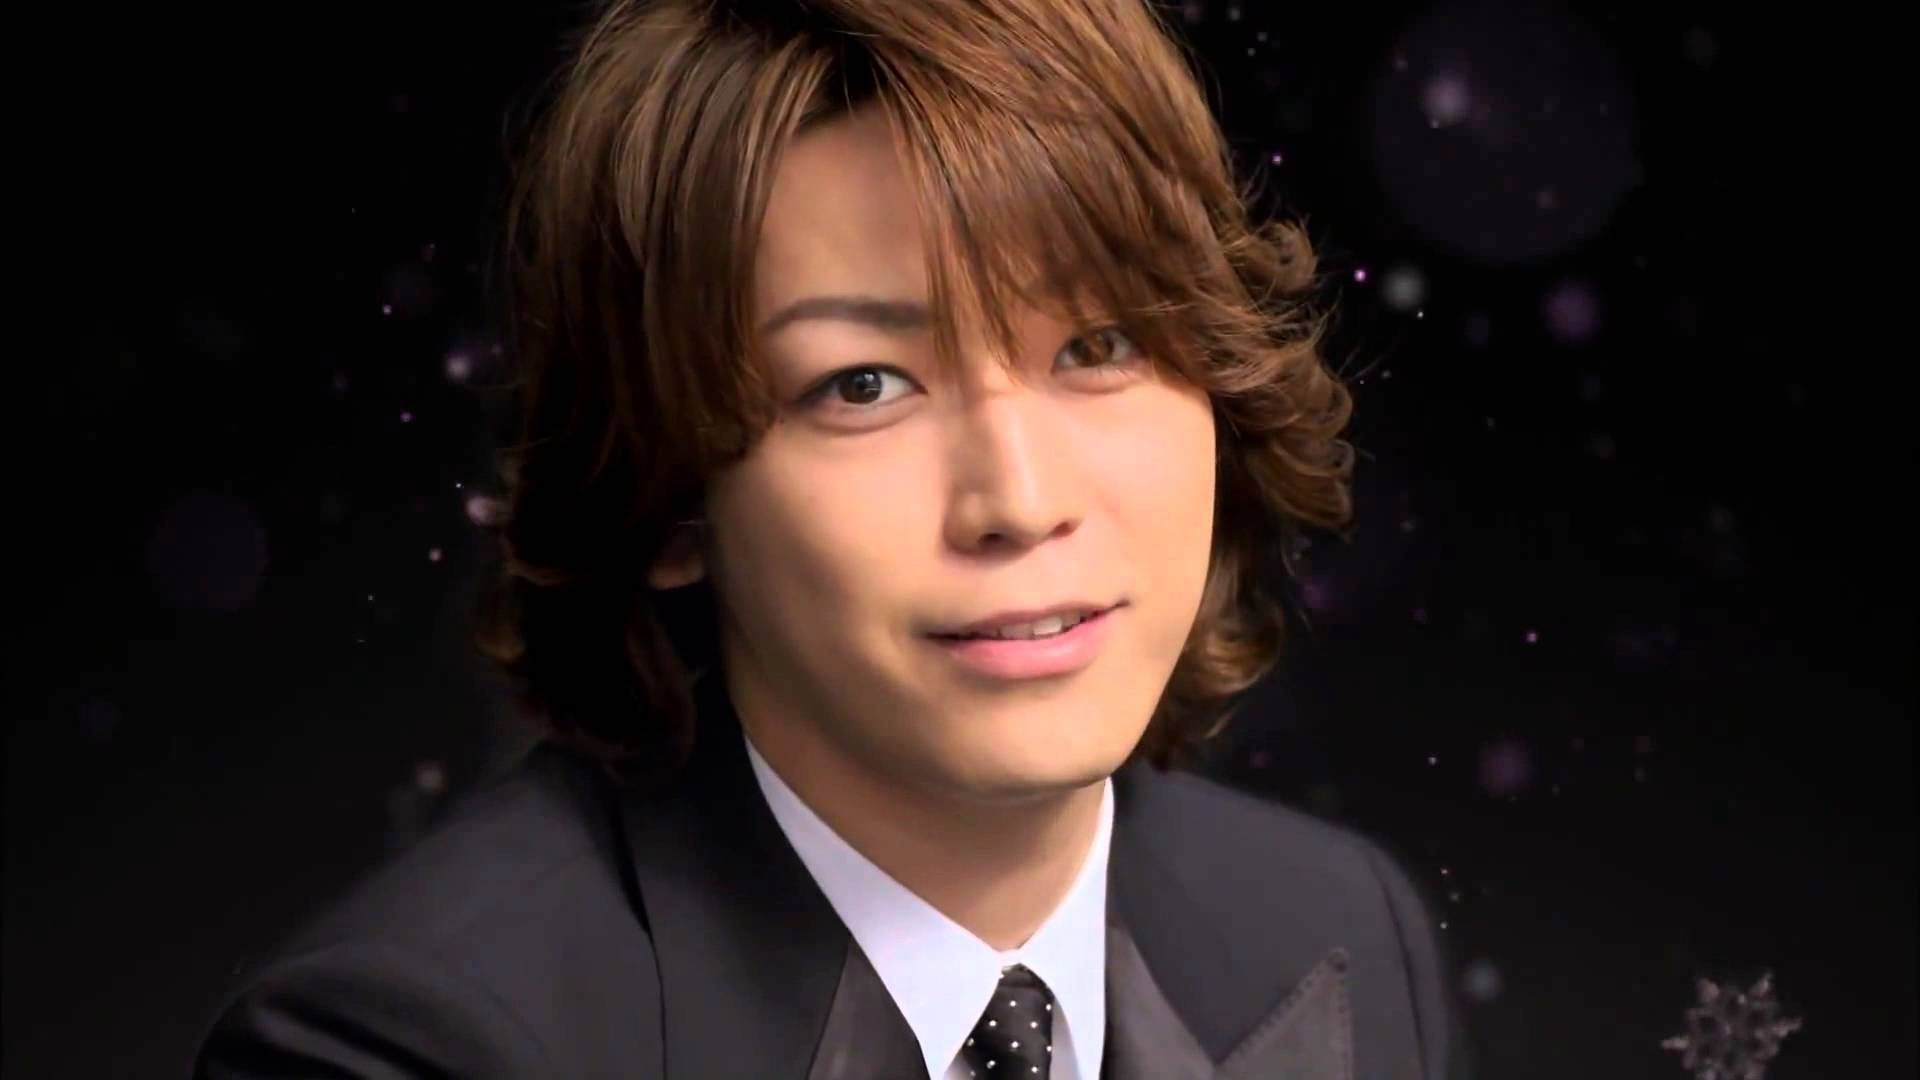 img 5a17cfefd7b1a.png?resize=300,169 - 亀梨和也の性格は良い?それとも性悪?本当はどっち…!?